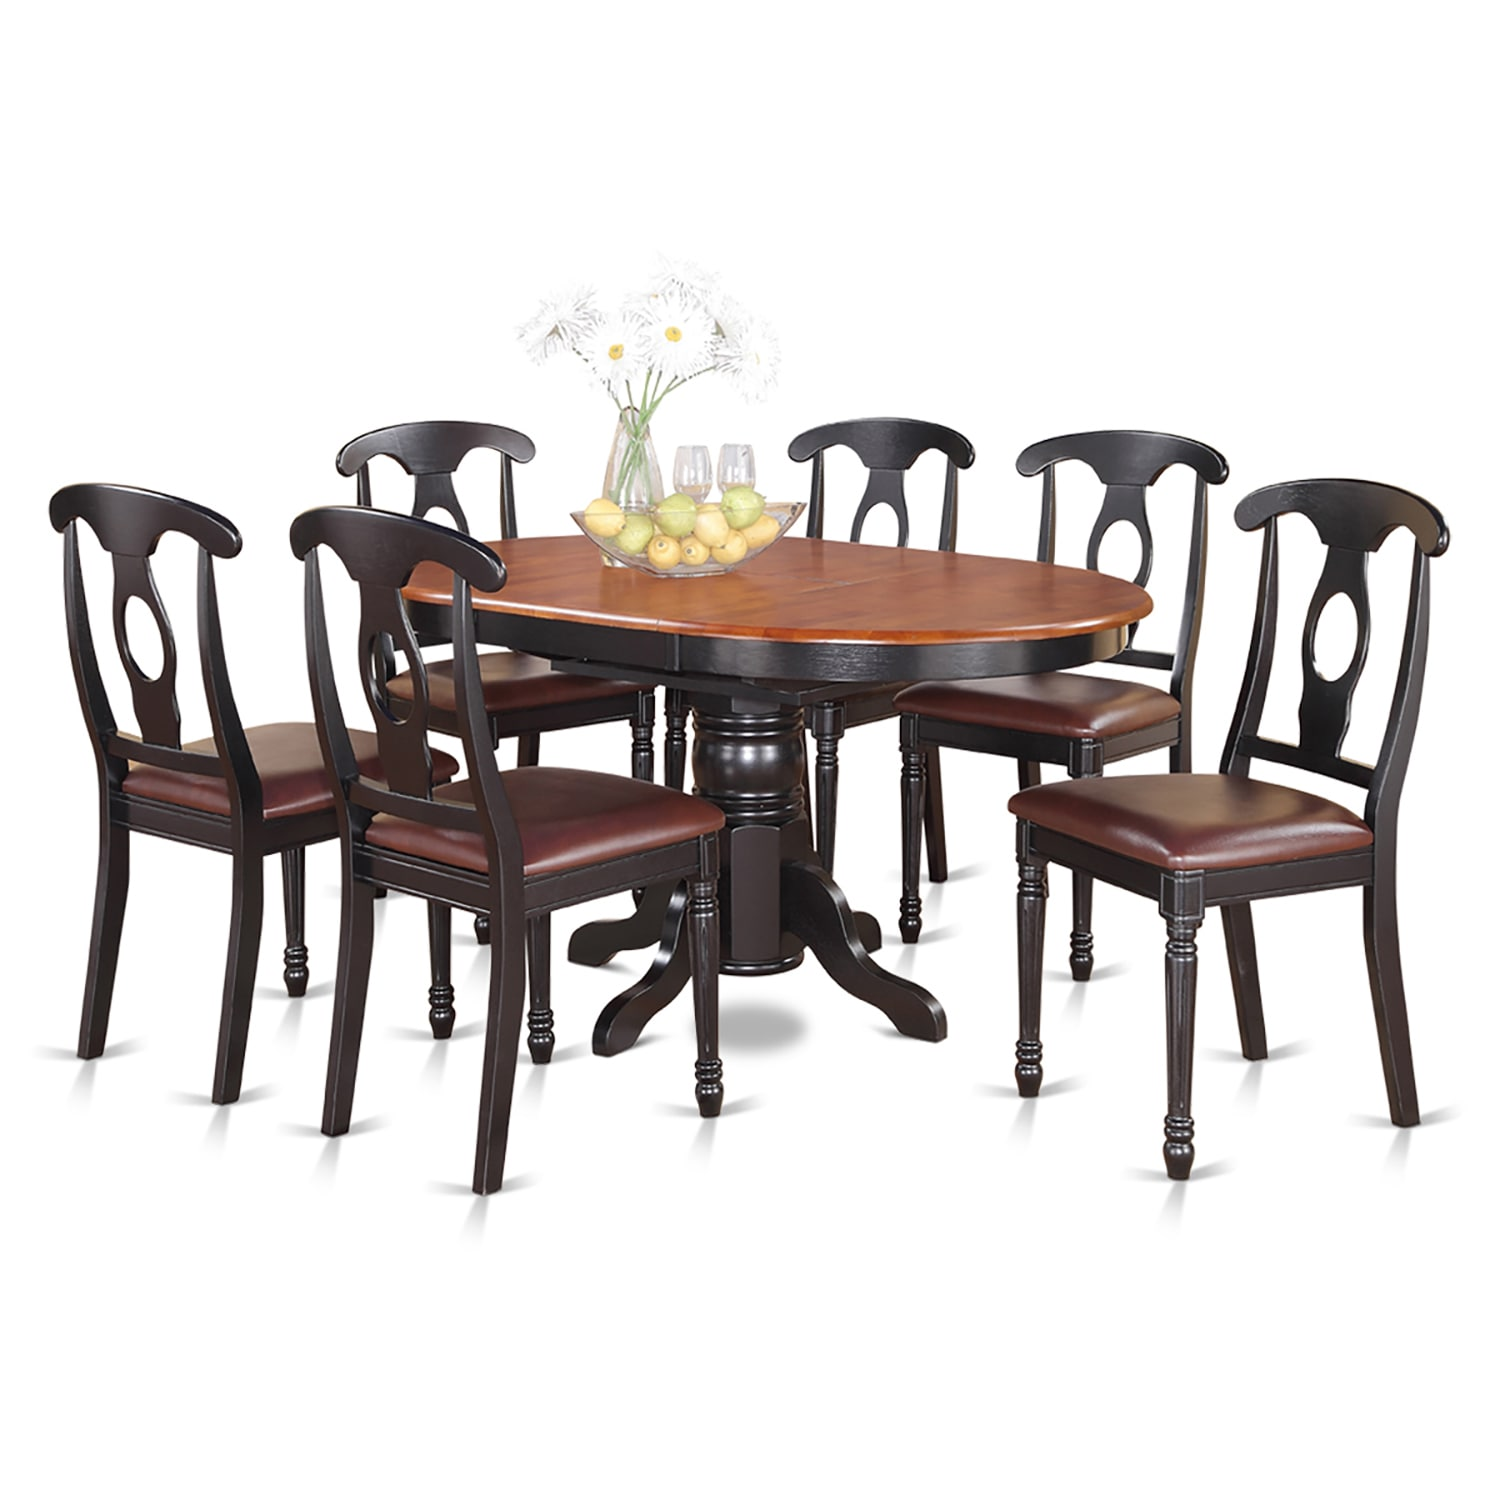 Excellent 7 Piece Pedestal Oval Dining Table And 6 Dining Chairs Theyellowbook Wood Chair Design Ideas Theyellowbookinfo